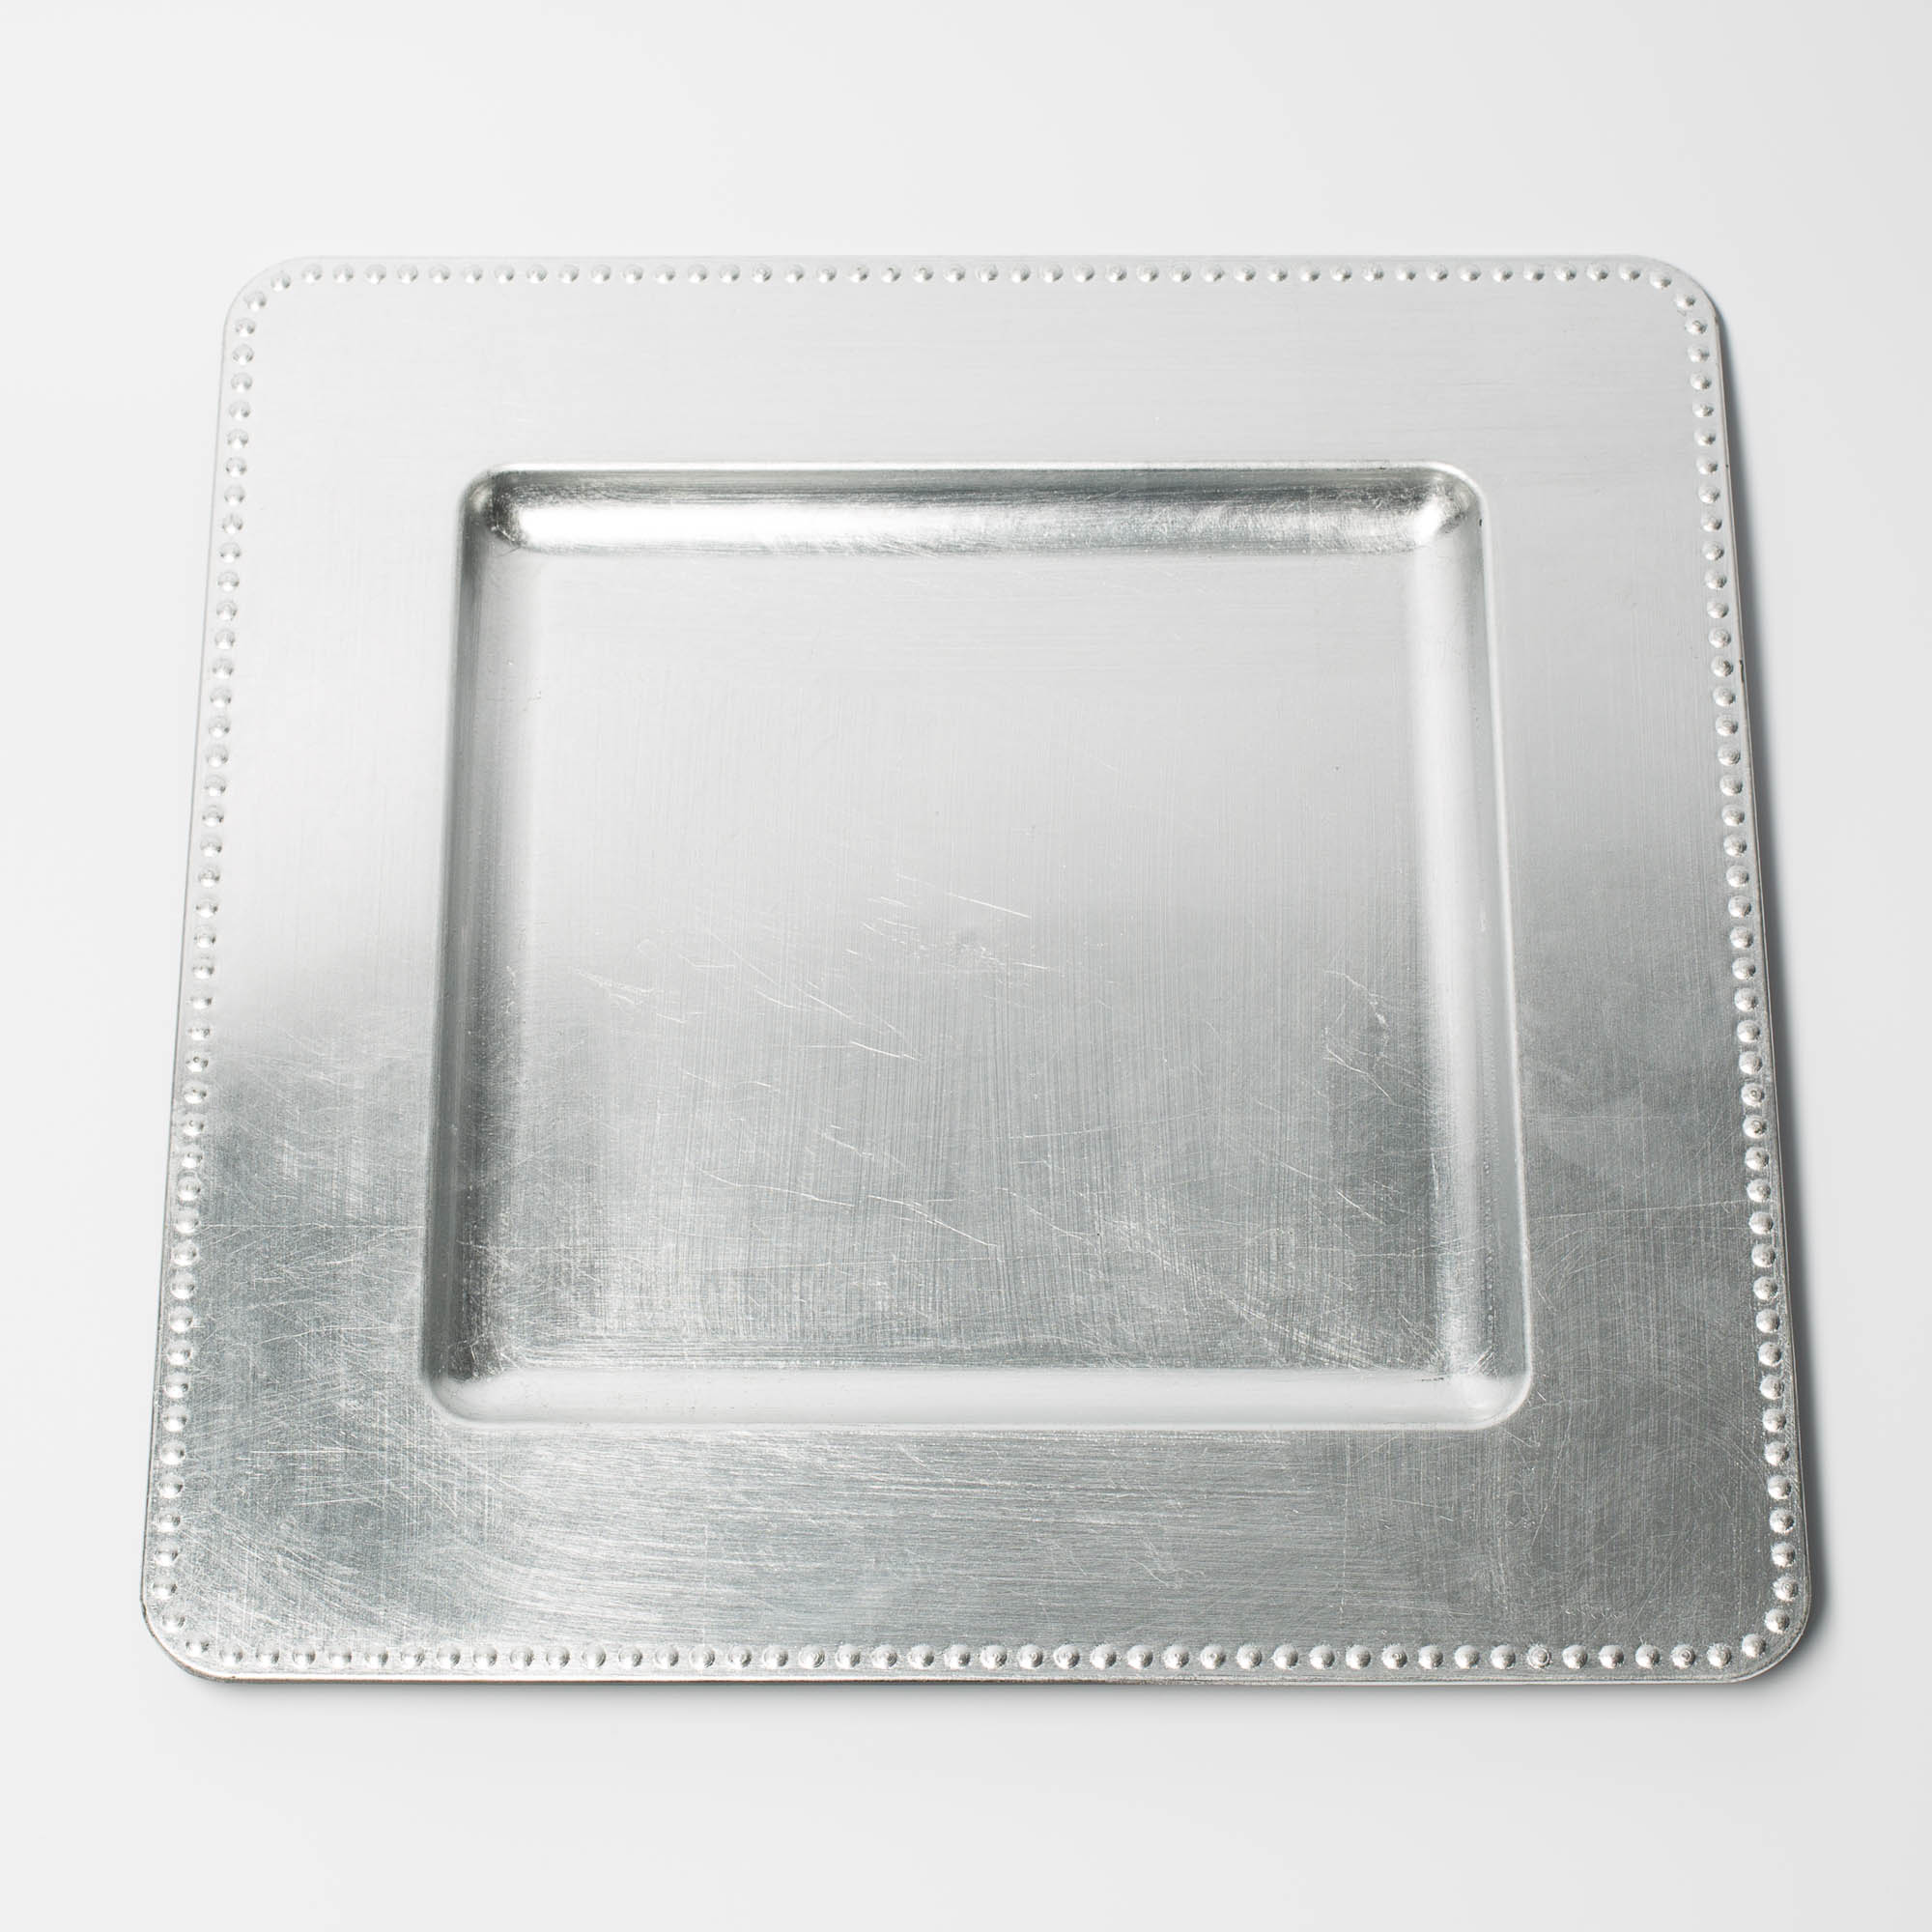 Richland Charger Plates 13\  Square Beaded Silver Set of 48 & Richland Charger Plates 13\